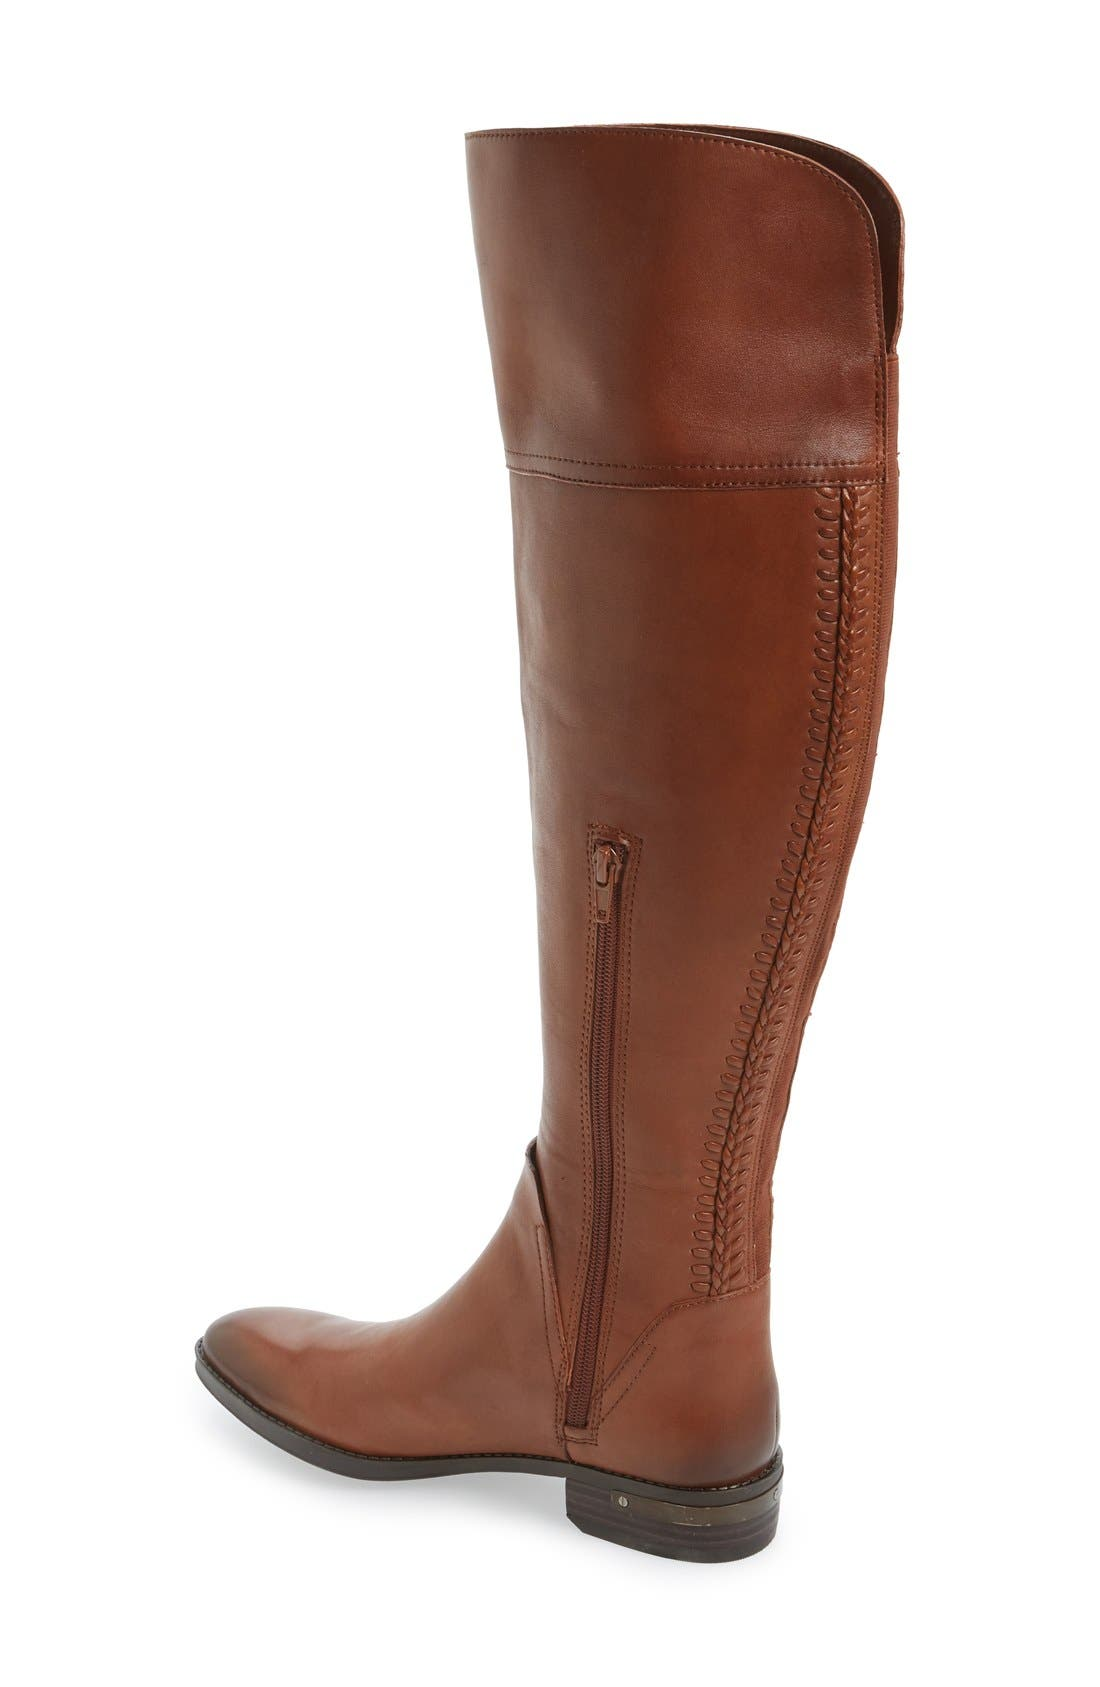 Alternate Image 2  - Vince Camuto 'Pedra' Wide Calf Over the Knee Boot (Women)